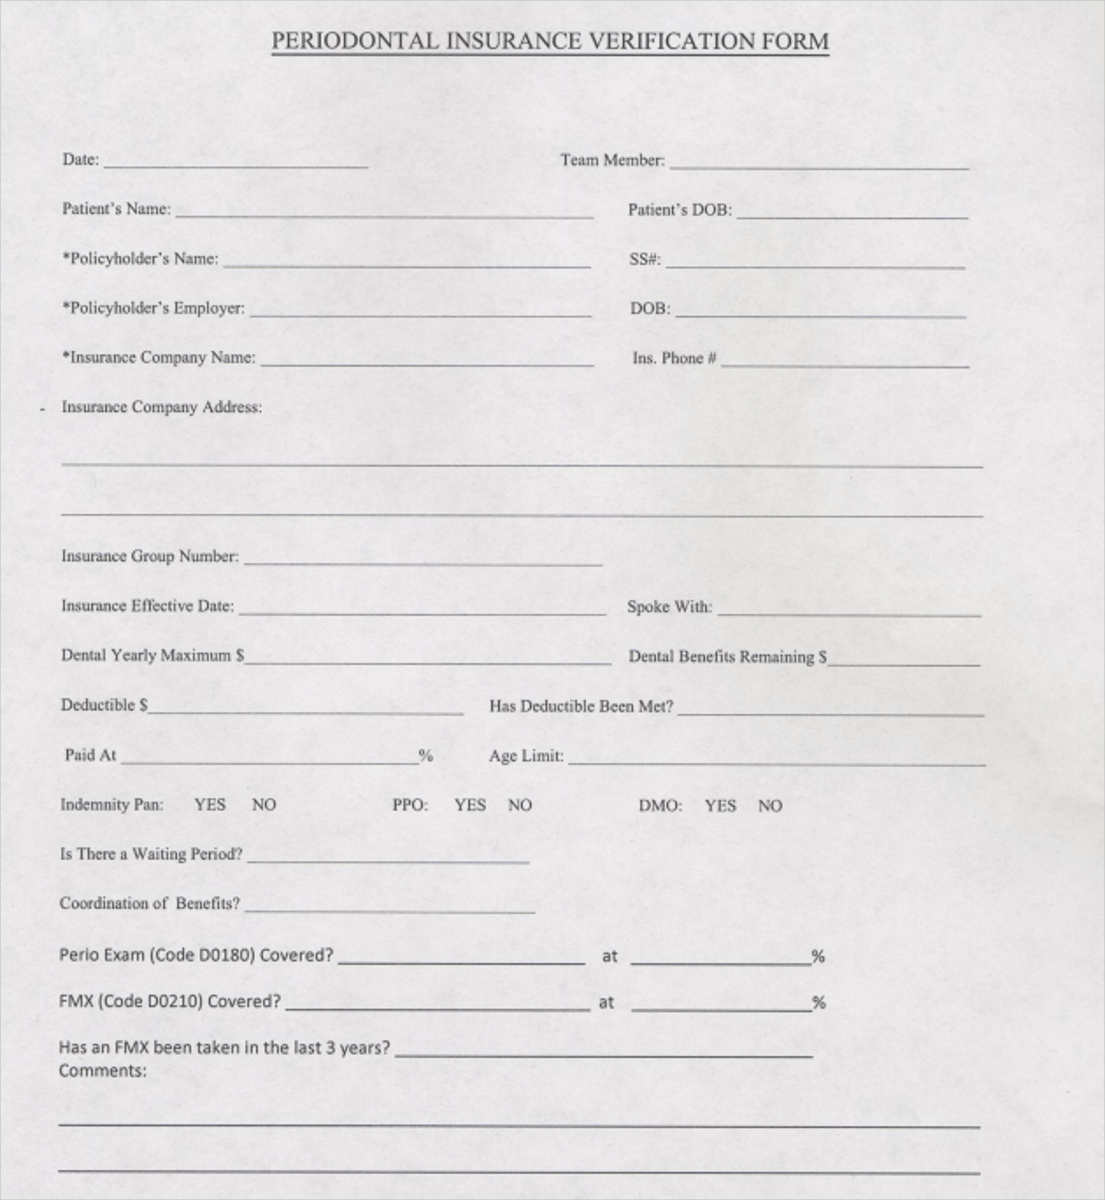 Electronic Signature Free >> FREE 6+ Dental Insurance Verification Forms in Samples, Examples, Formats